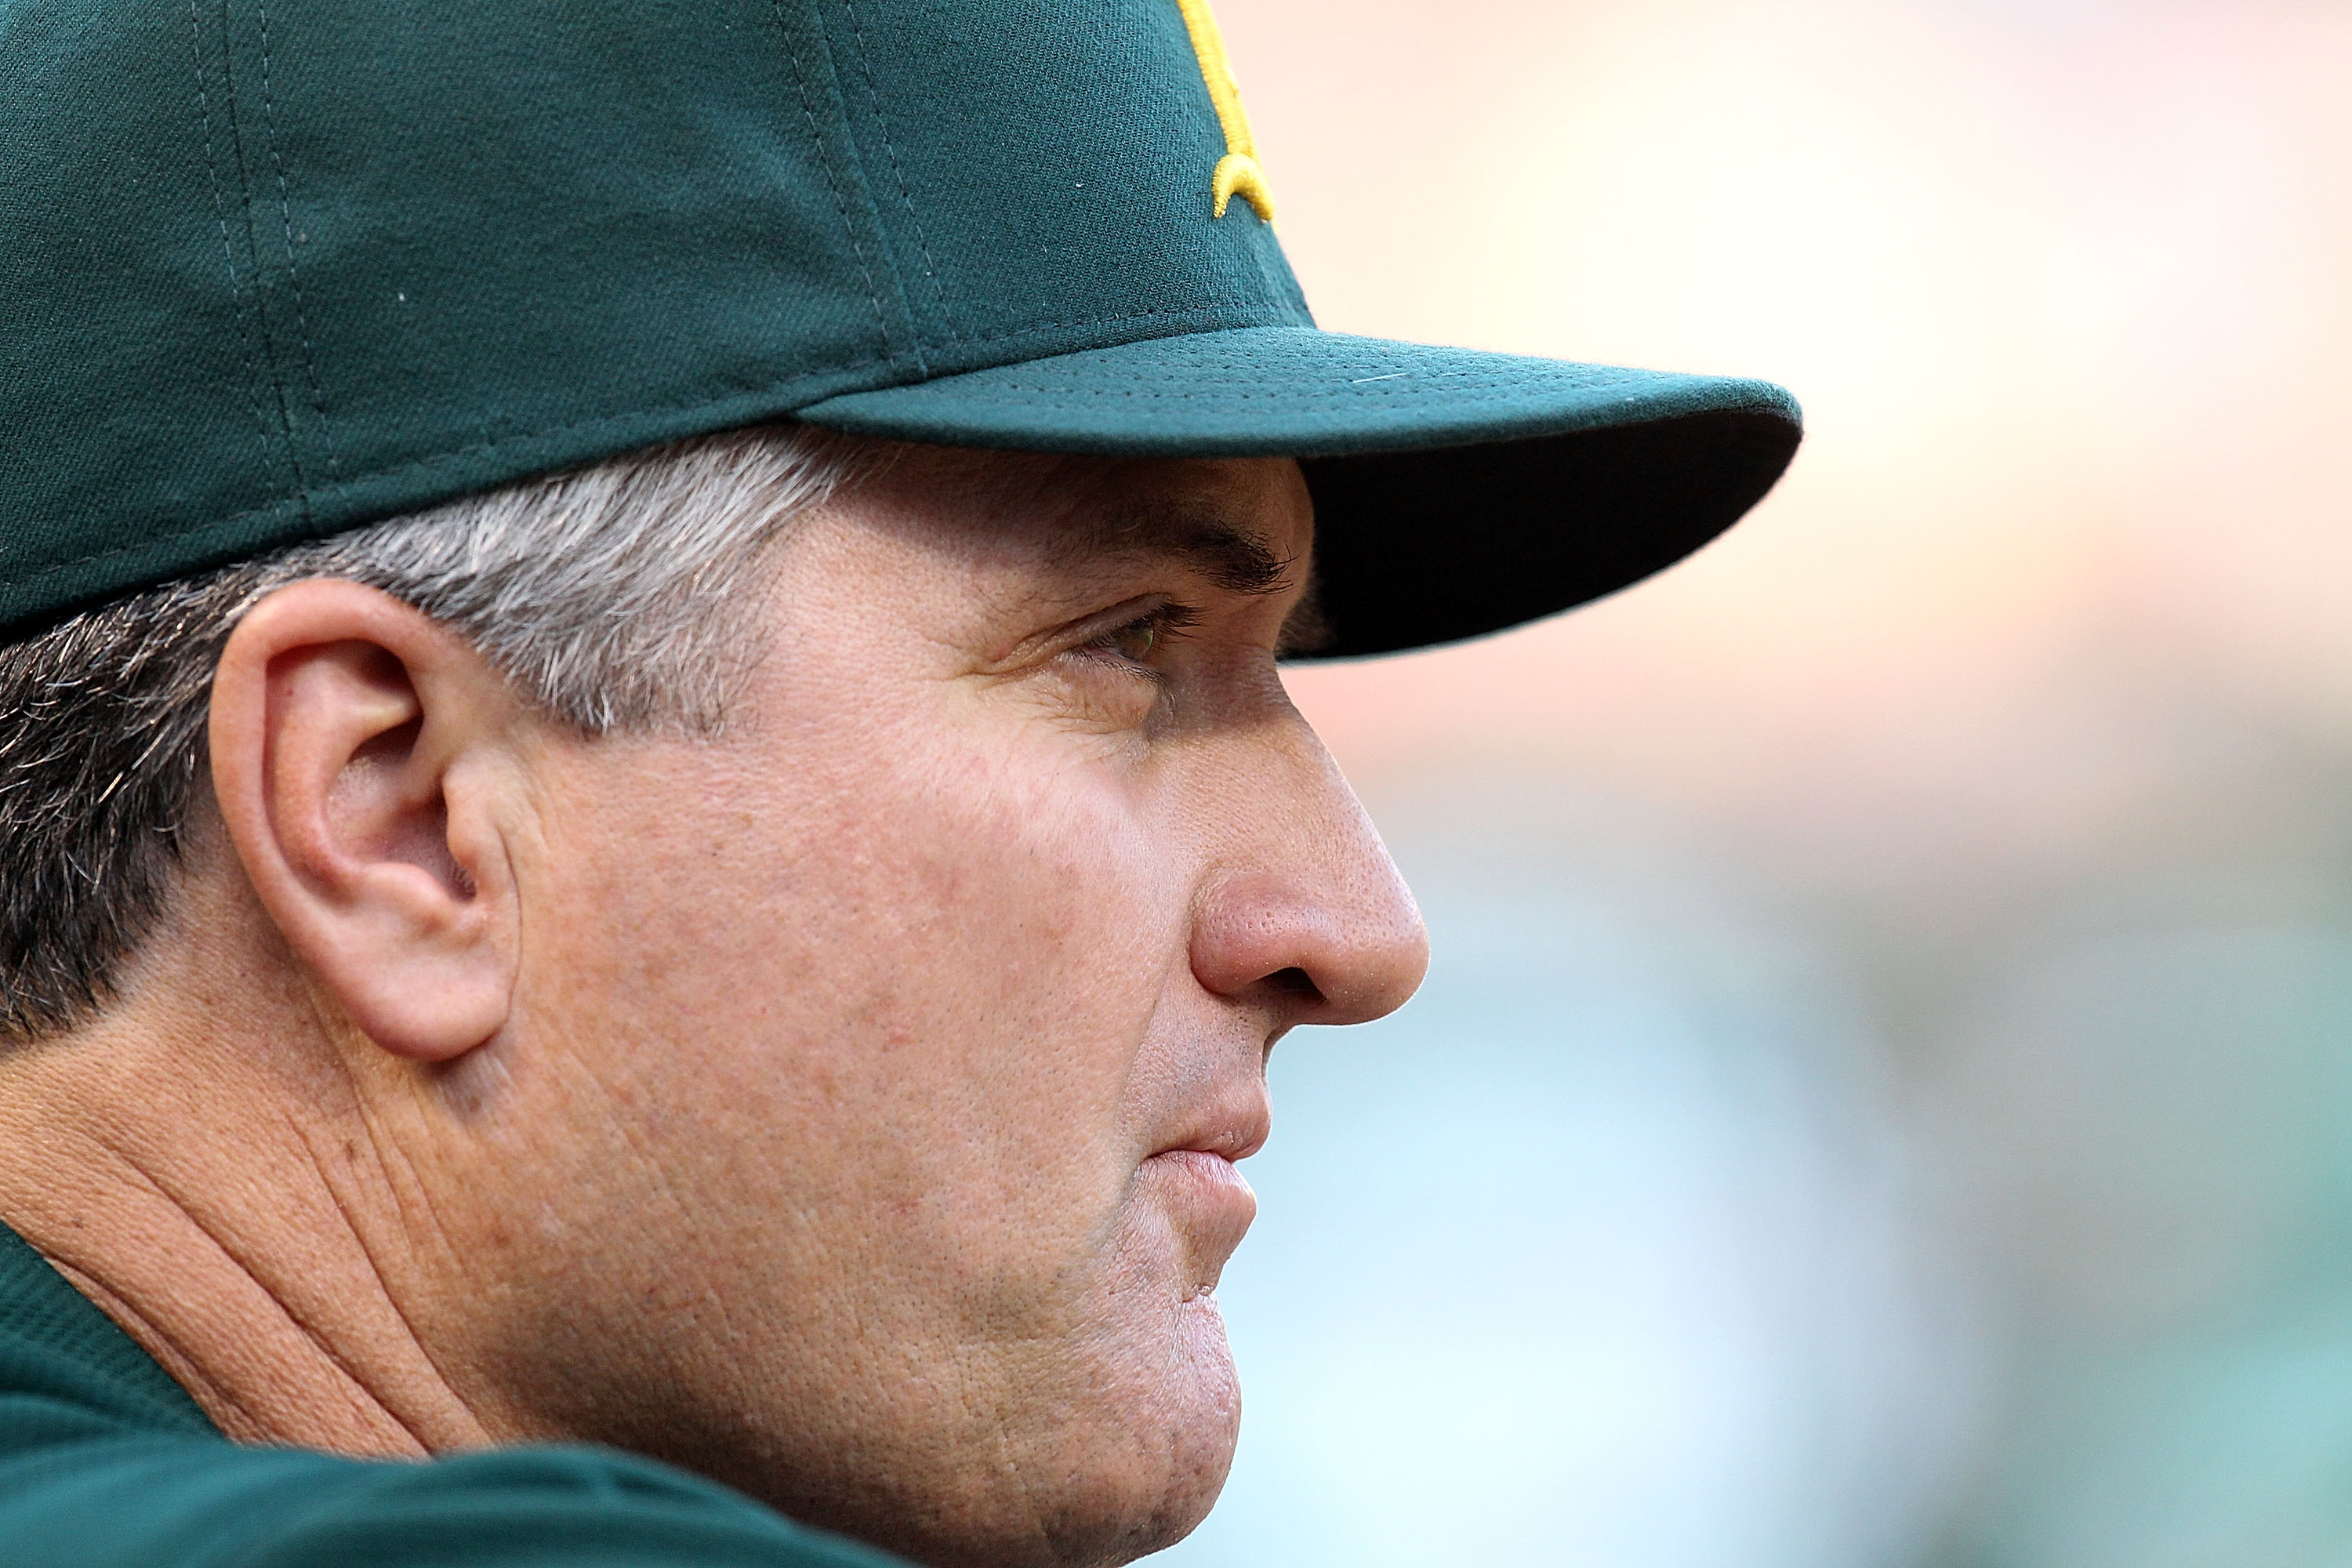 ARLINGTON, TX - JULY 29:  Manager Bob Geren #17 of the Oakland Athletics on July 29, 2010 at Rangers Ballpark in Arlington, Texas.  (Photo by Ronald Martinez/Getty Images)